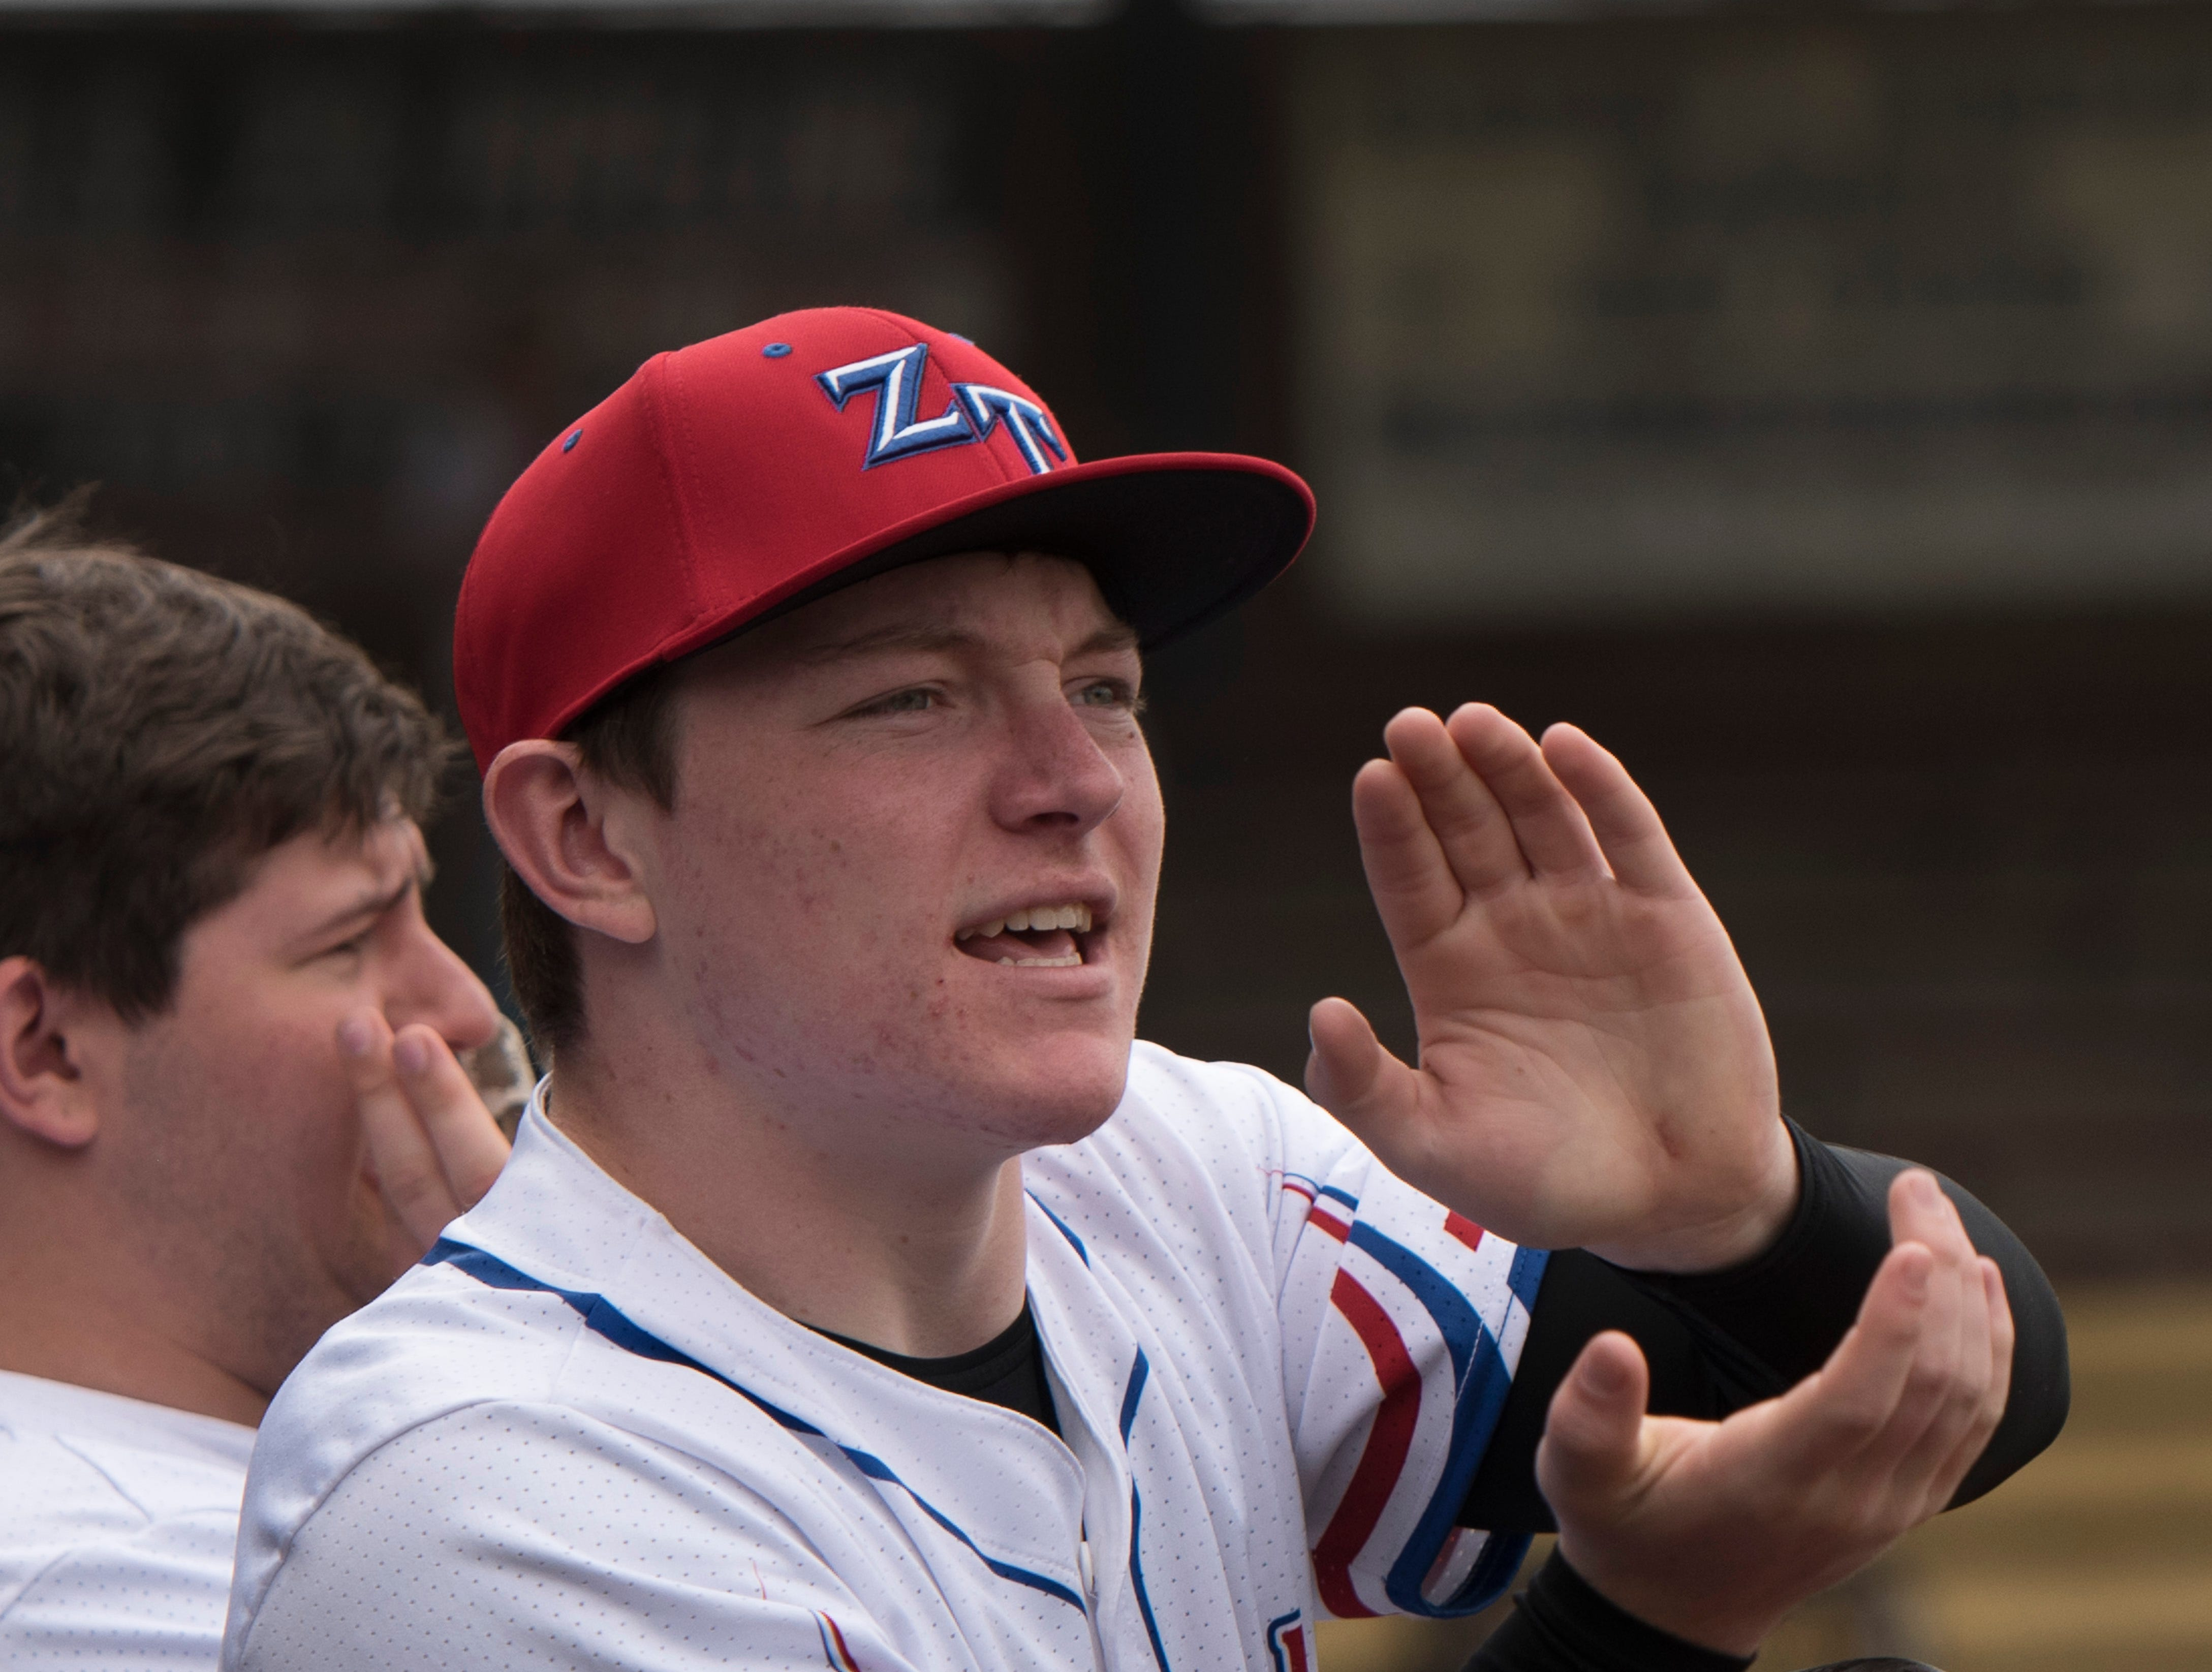 Zane Trace fell to Athens 13-5 Saturday afternoon at the VA Memorial Stadium in Chillicothe, OH.